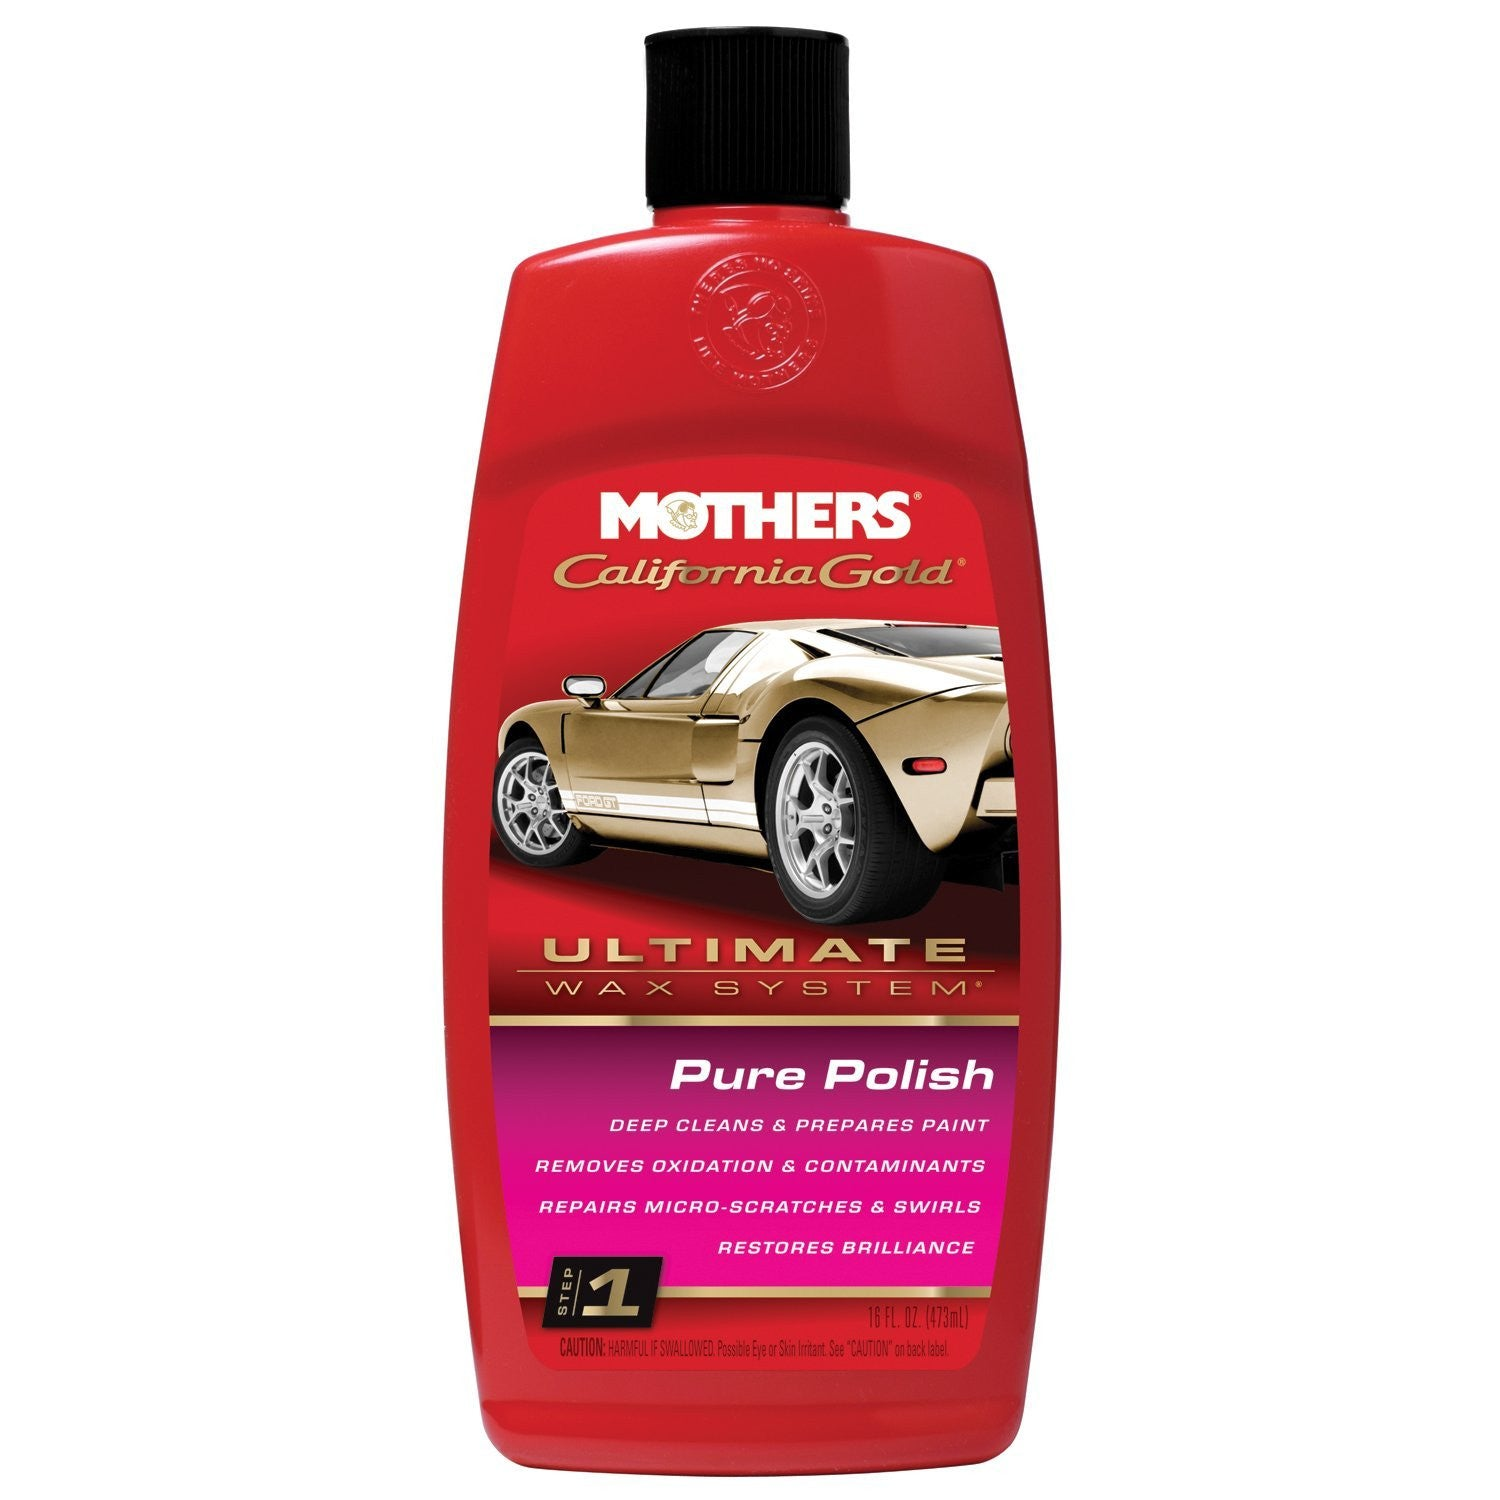 MOTHERS California Gold Pure Polish (Ultimate Wax System, Step 1)